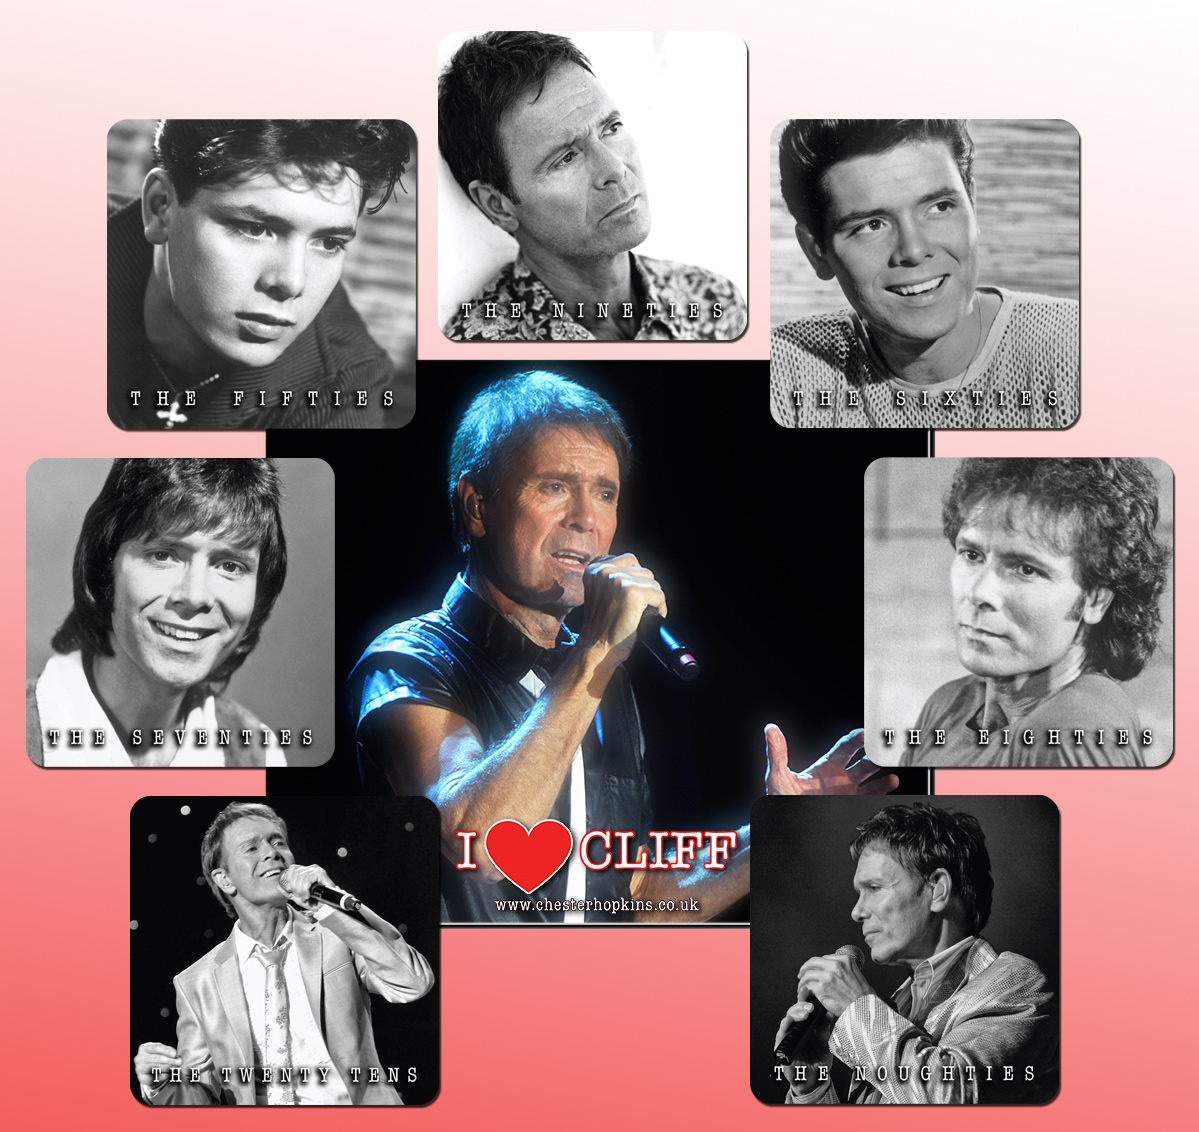 Cliff Richard mousemat and 7 coasters celebratingCliff through the decades.